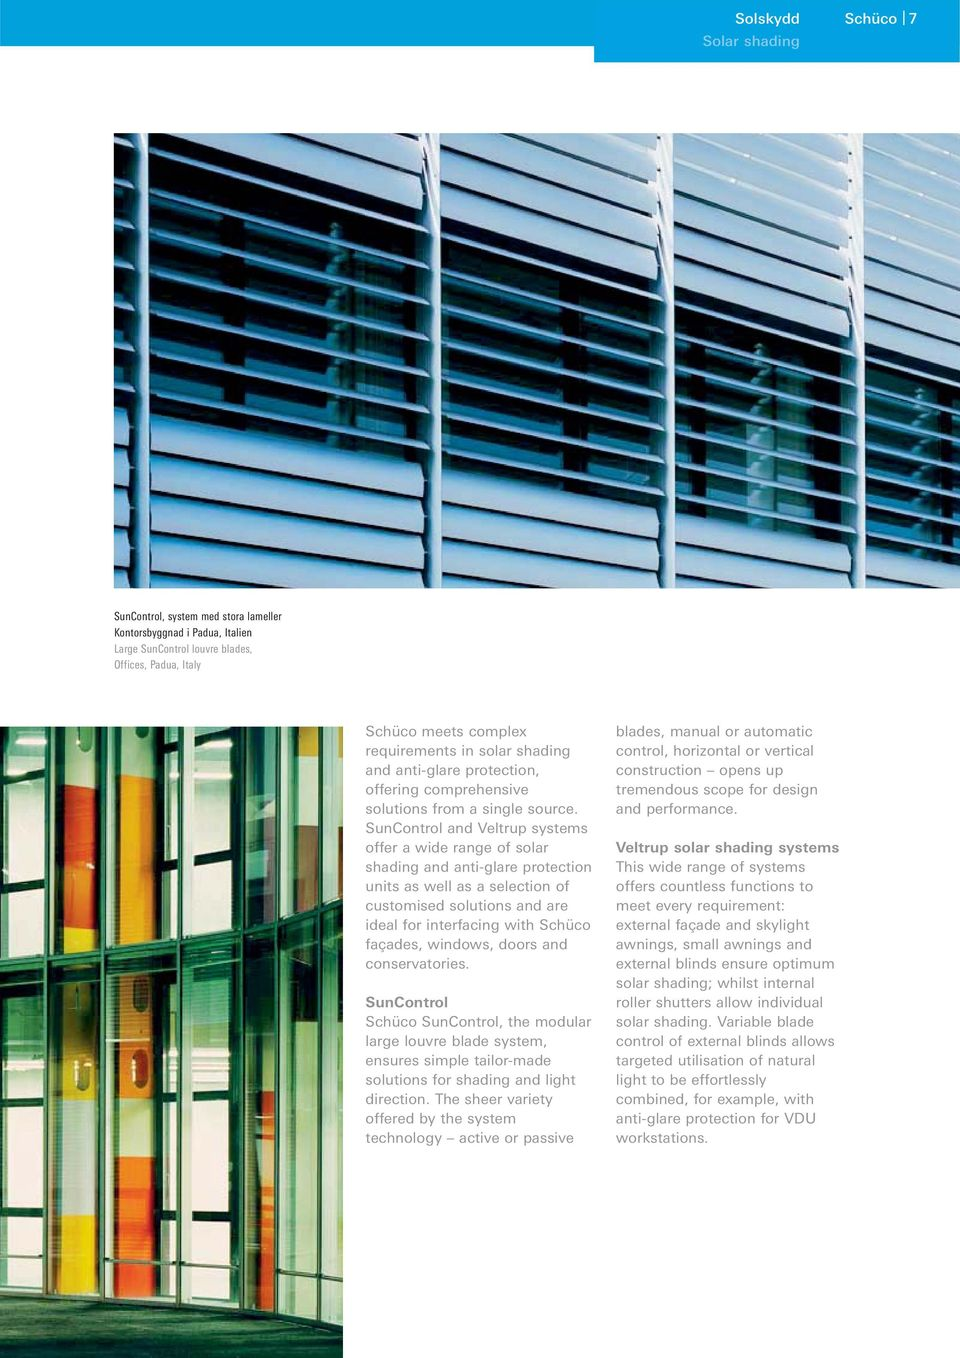 SunControl and Veltrup systems offer a wide range of solar shading and anti-glare protection units as well as a selection of customised solutions and are ideal for interfacing with Schüco façades,